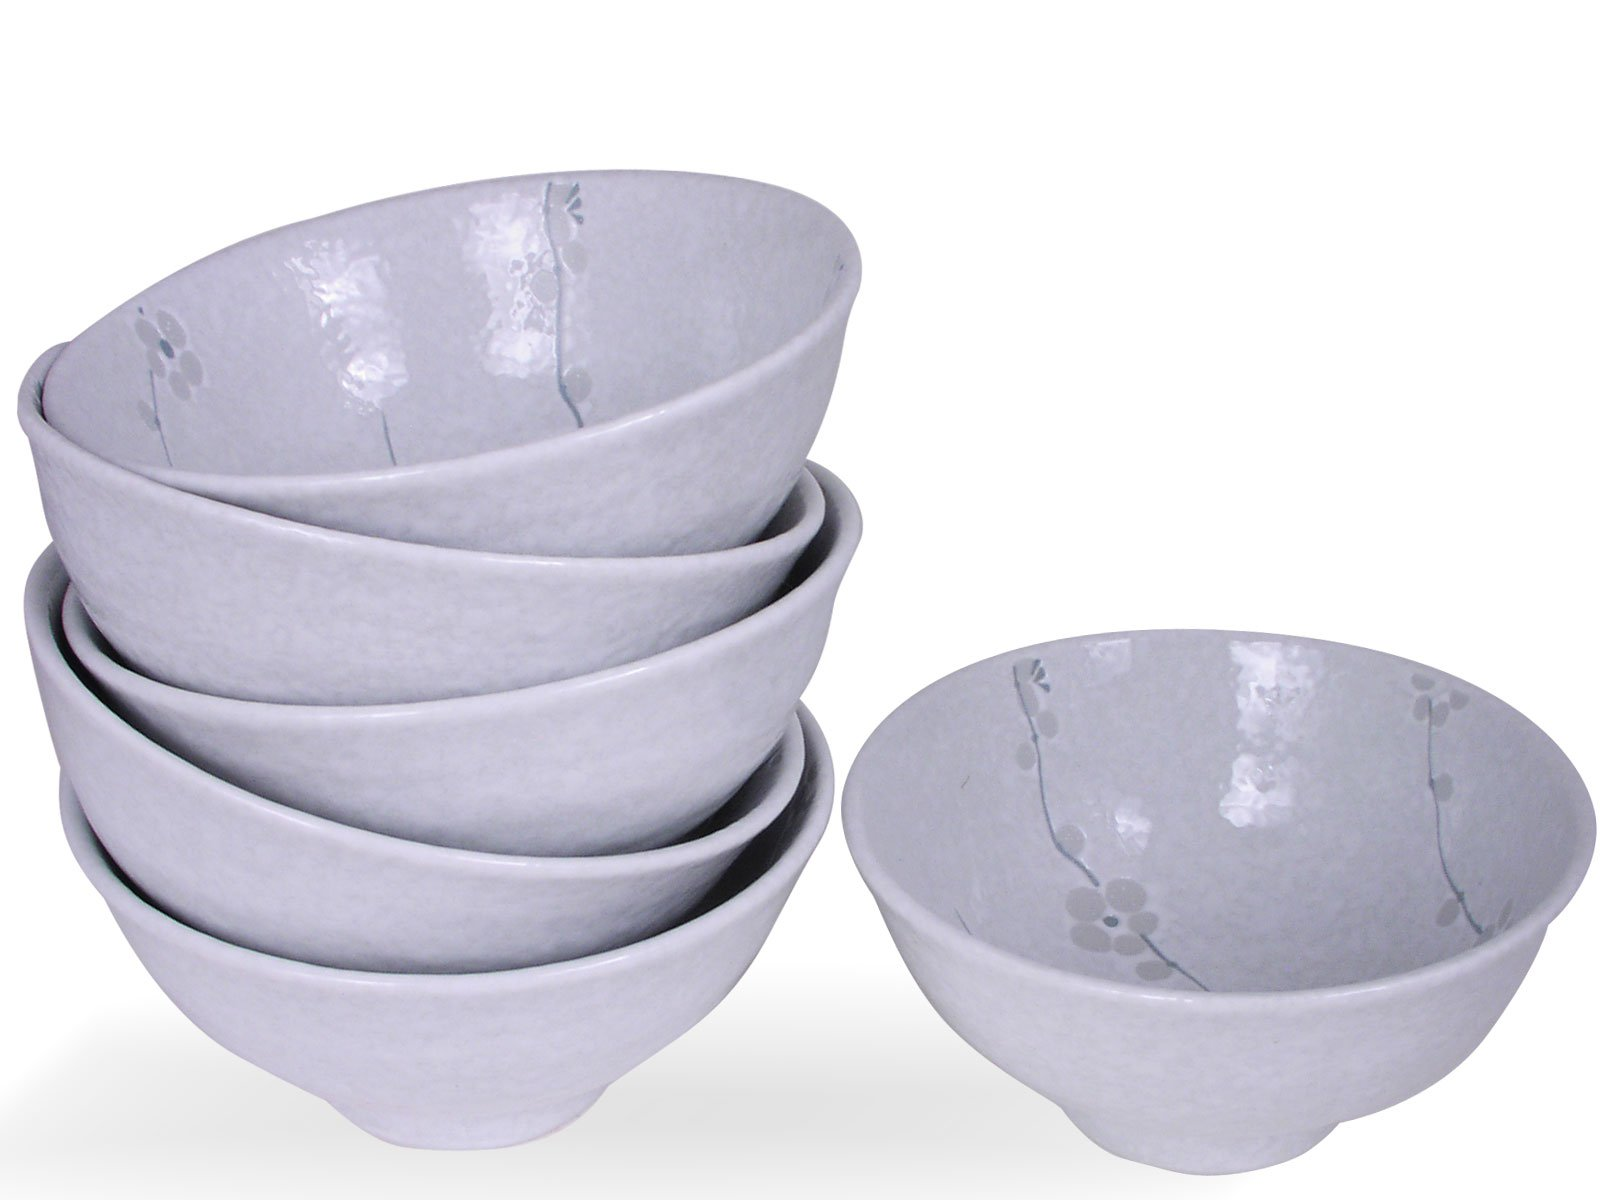 Happy Sales HSRSB-WHCH6, Japanese Rice Bowls, Soup, Cereal, Dessert Bowls 6 pc, White Cherry Blossom